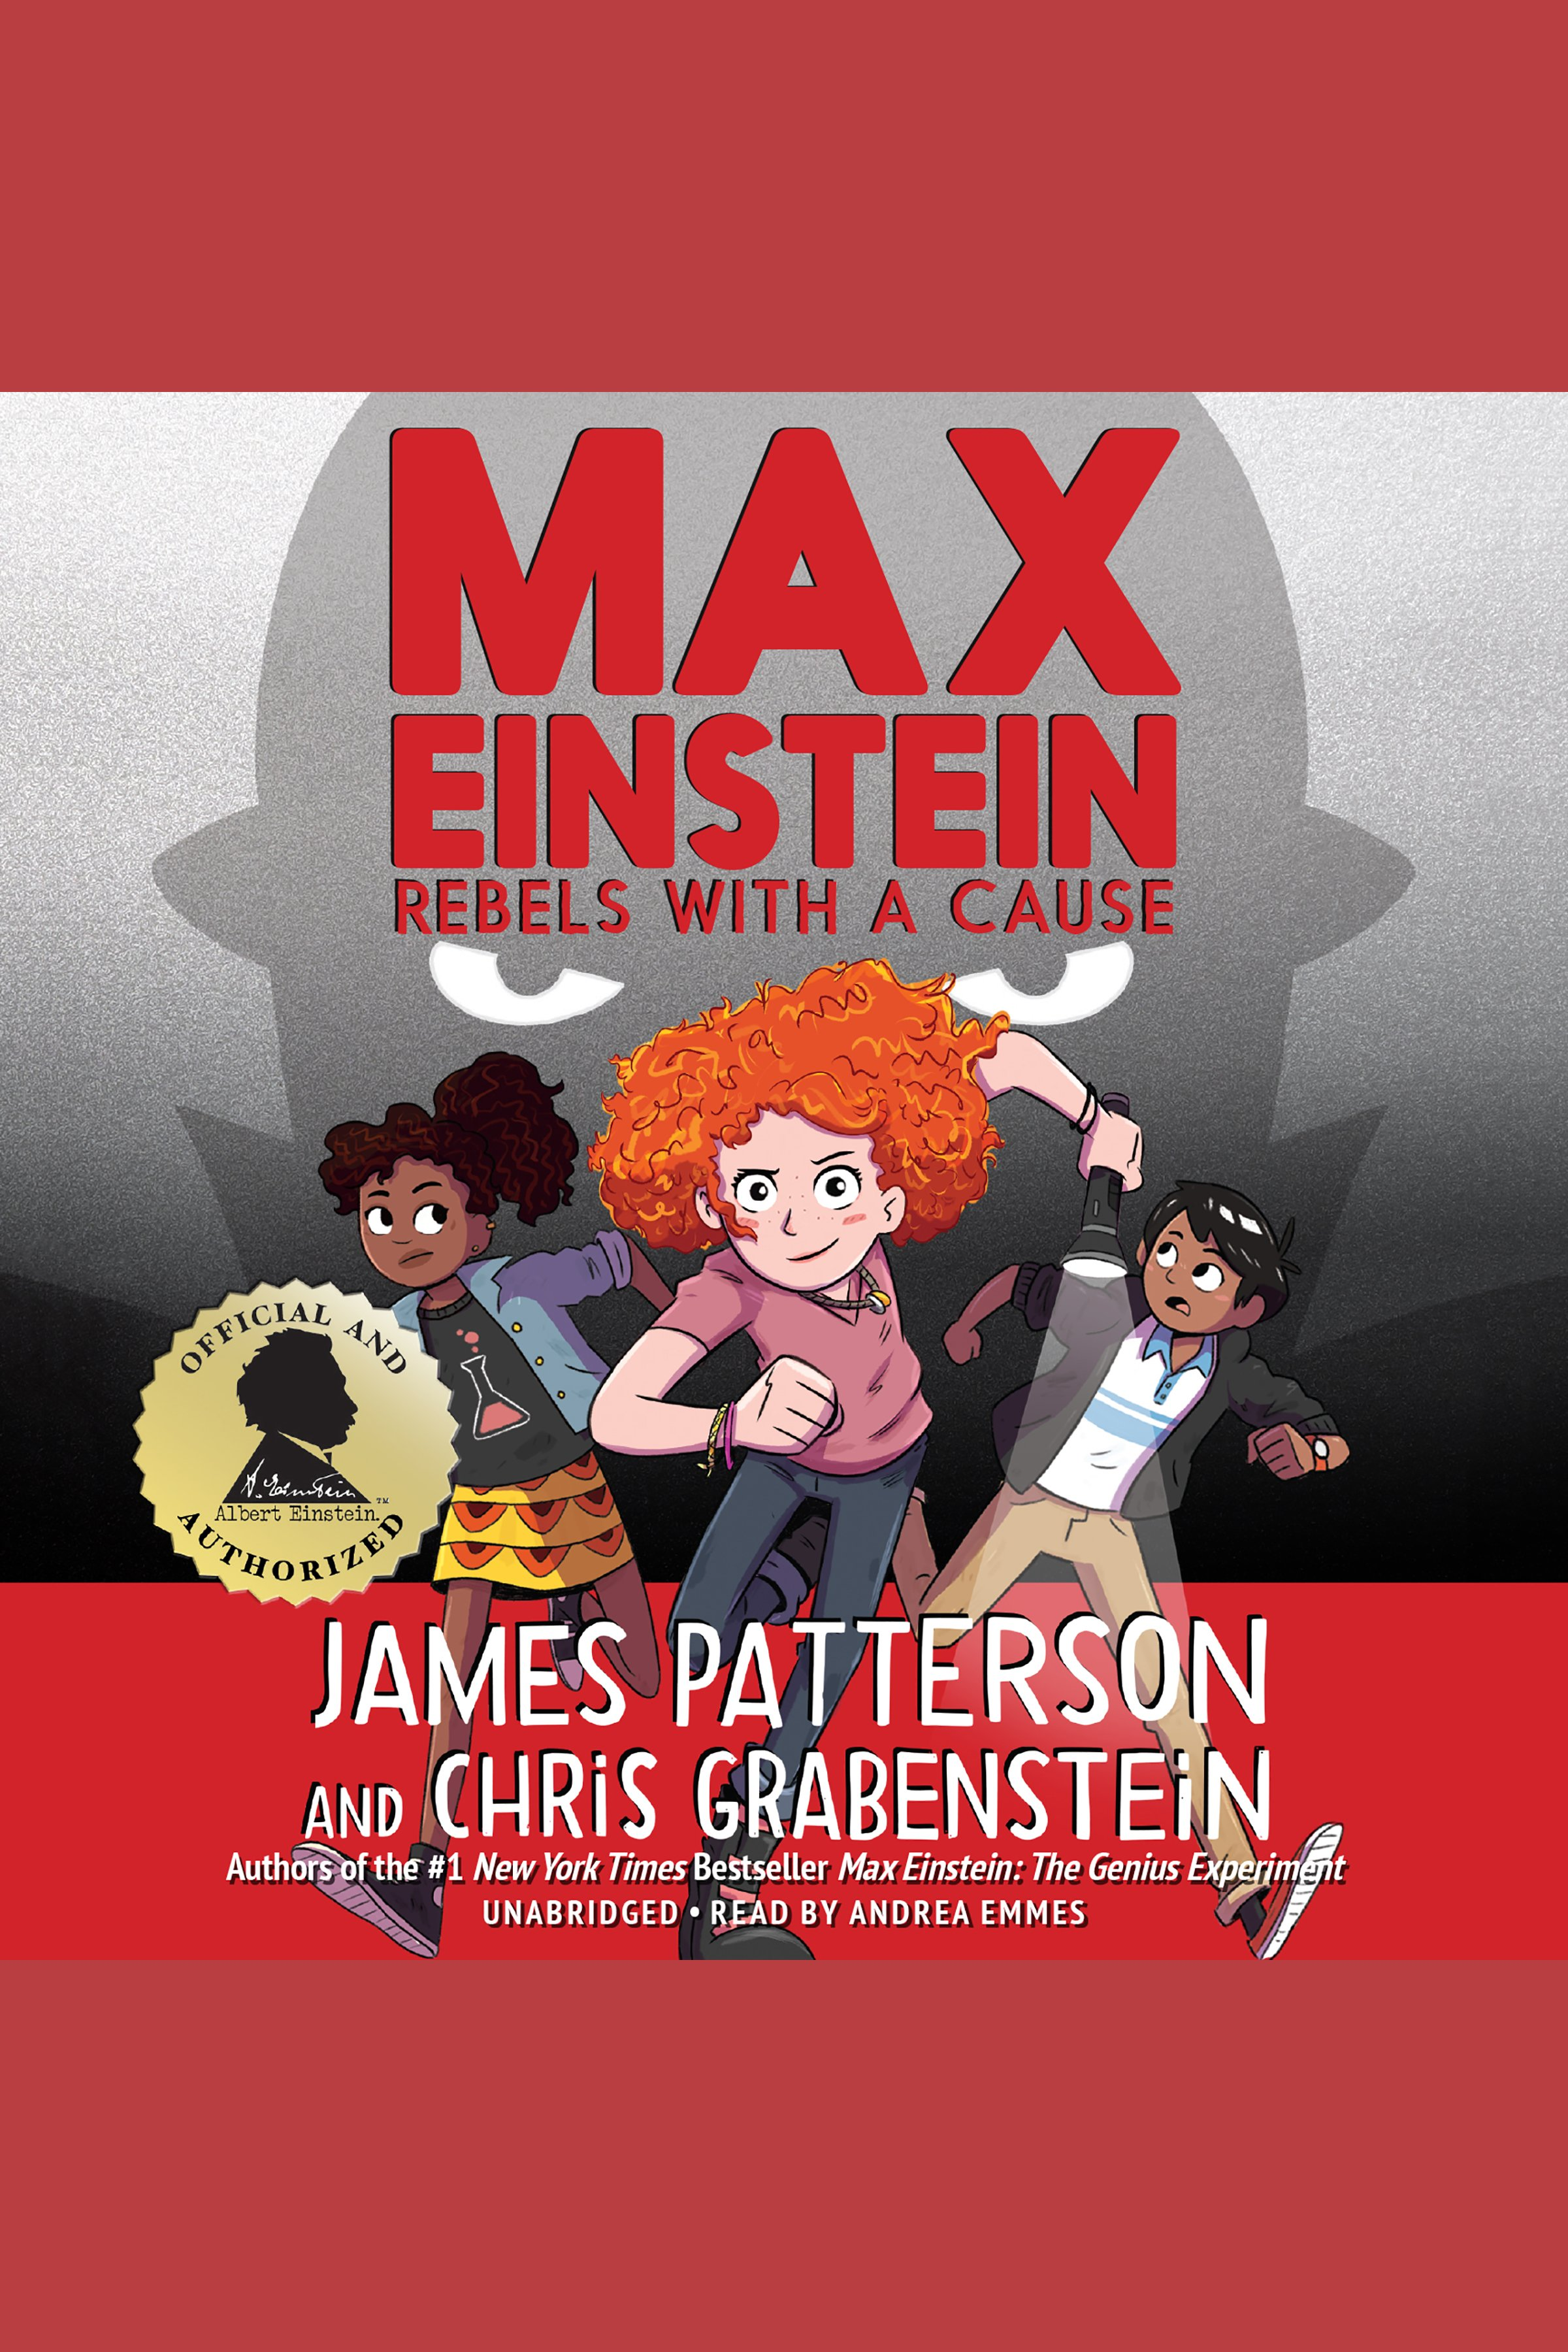 Max Einstein rebels with a cause cover image